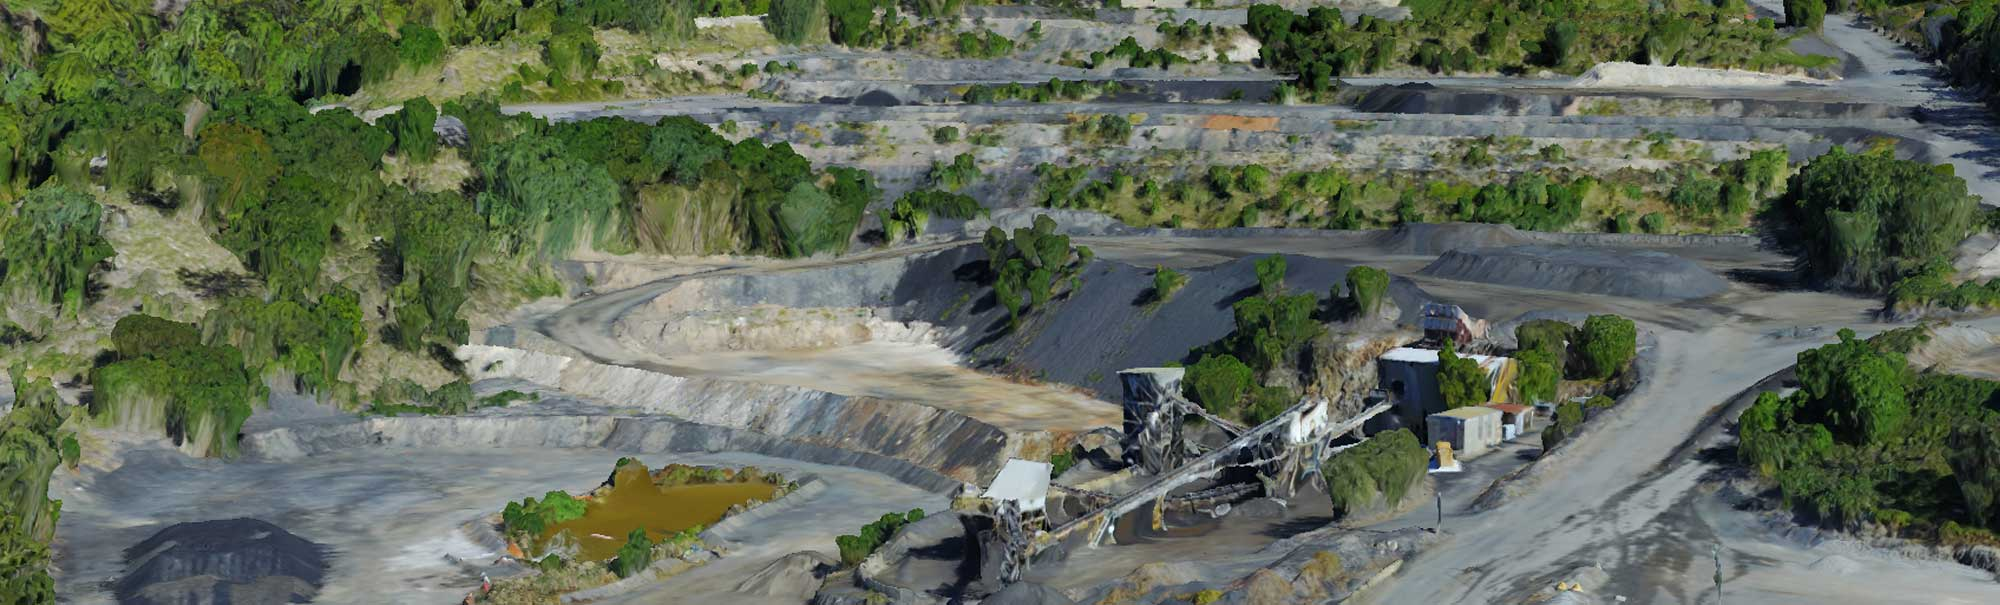 DroneAce used aerial drone mapping and 3D modeling photogrammetry techniques to produce this accurate 3D model of a quarry in Brisbane